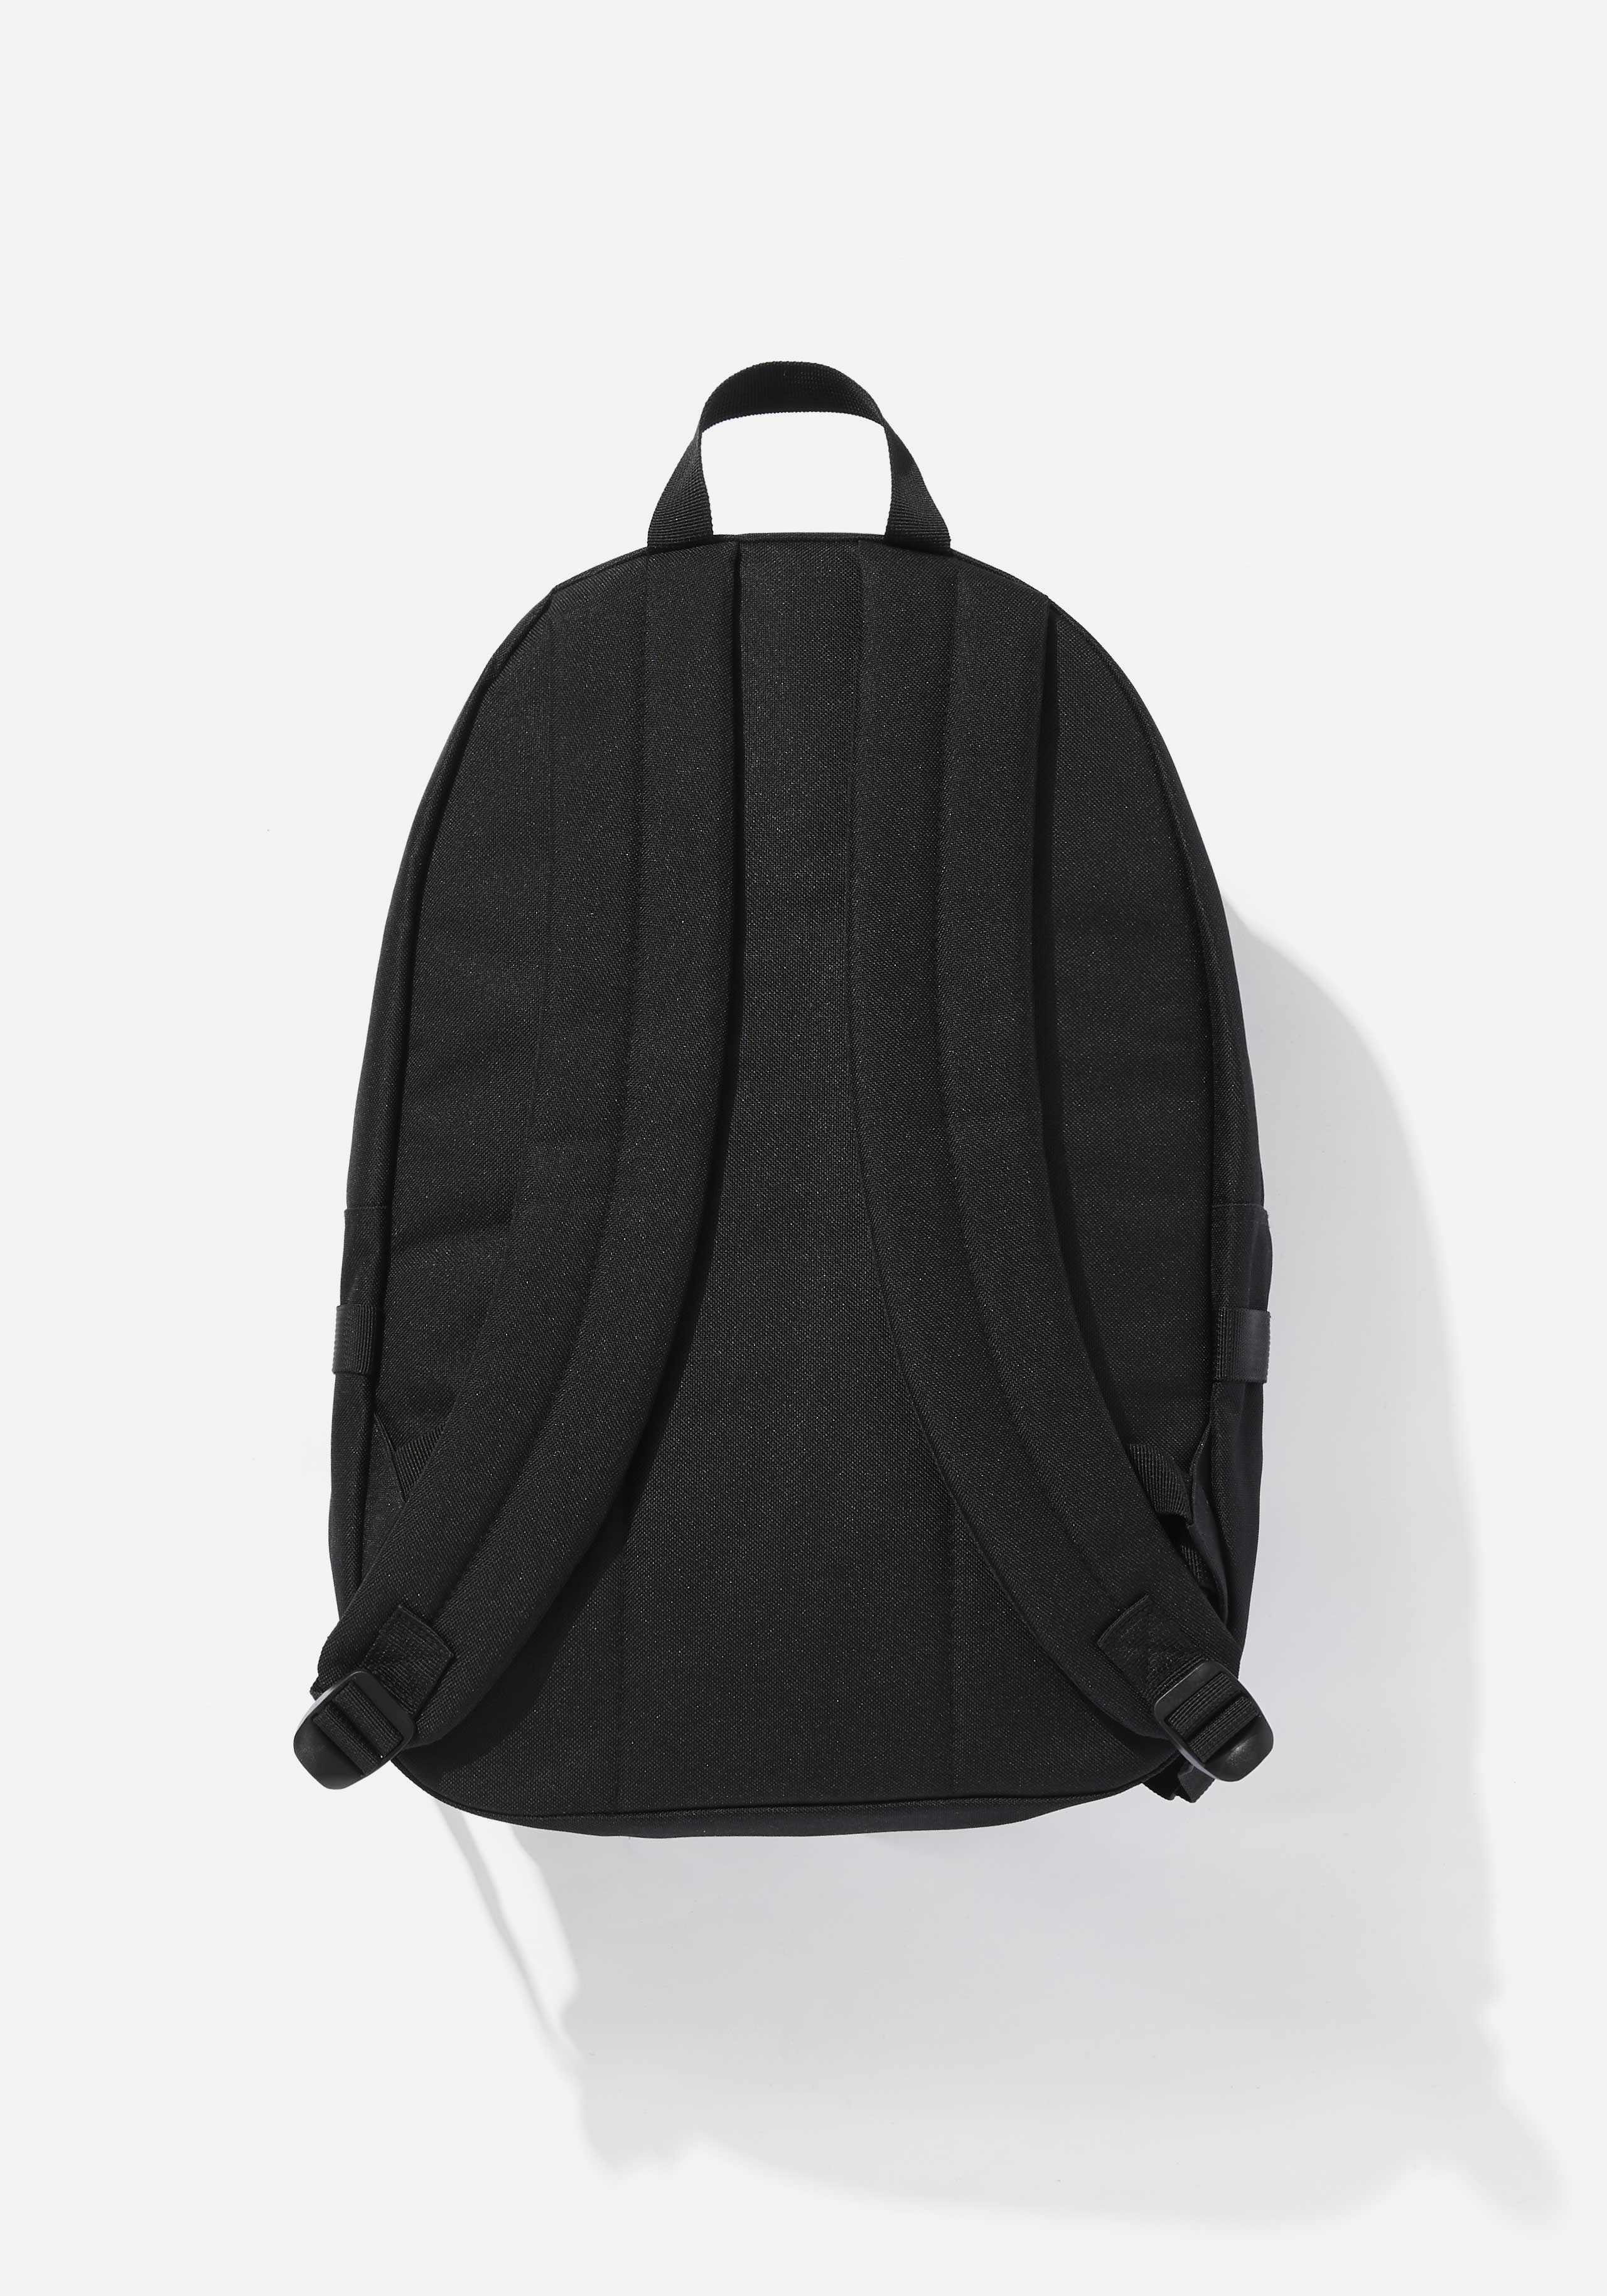 mki itc backpack 4